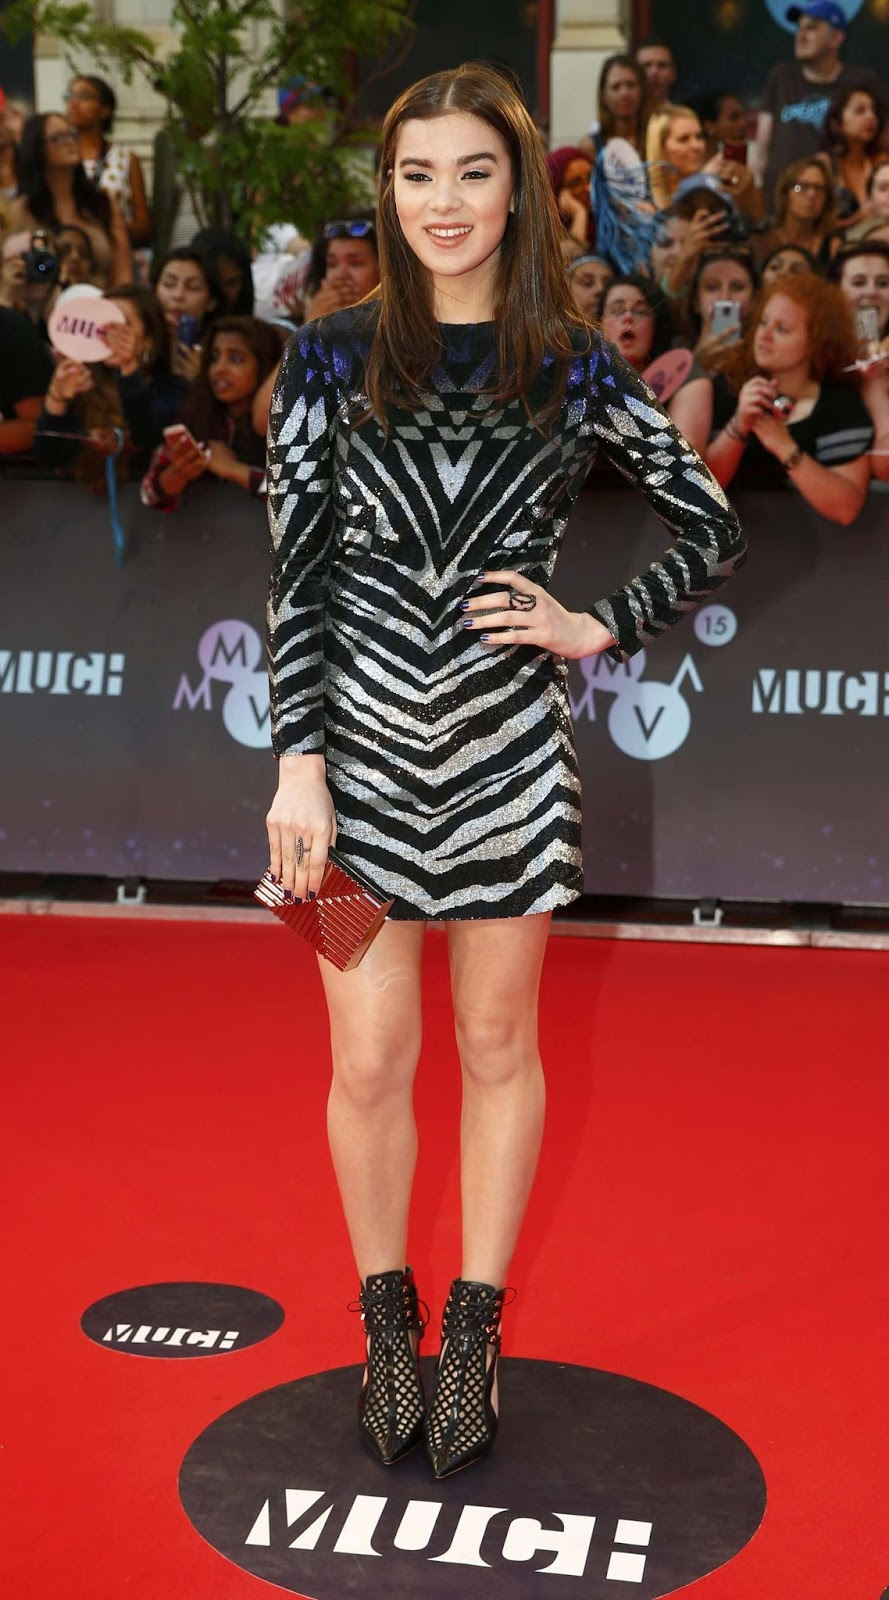 Hailee Steinfeld attends the 2015 MuchMusic Video Awards in Toronto, Canada in an Emilio Pucci zebra print sequin mini dress